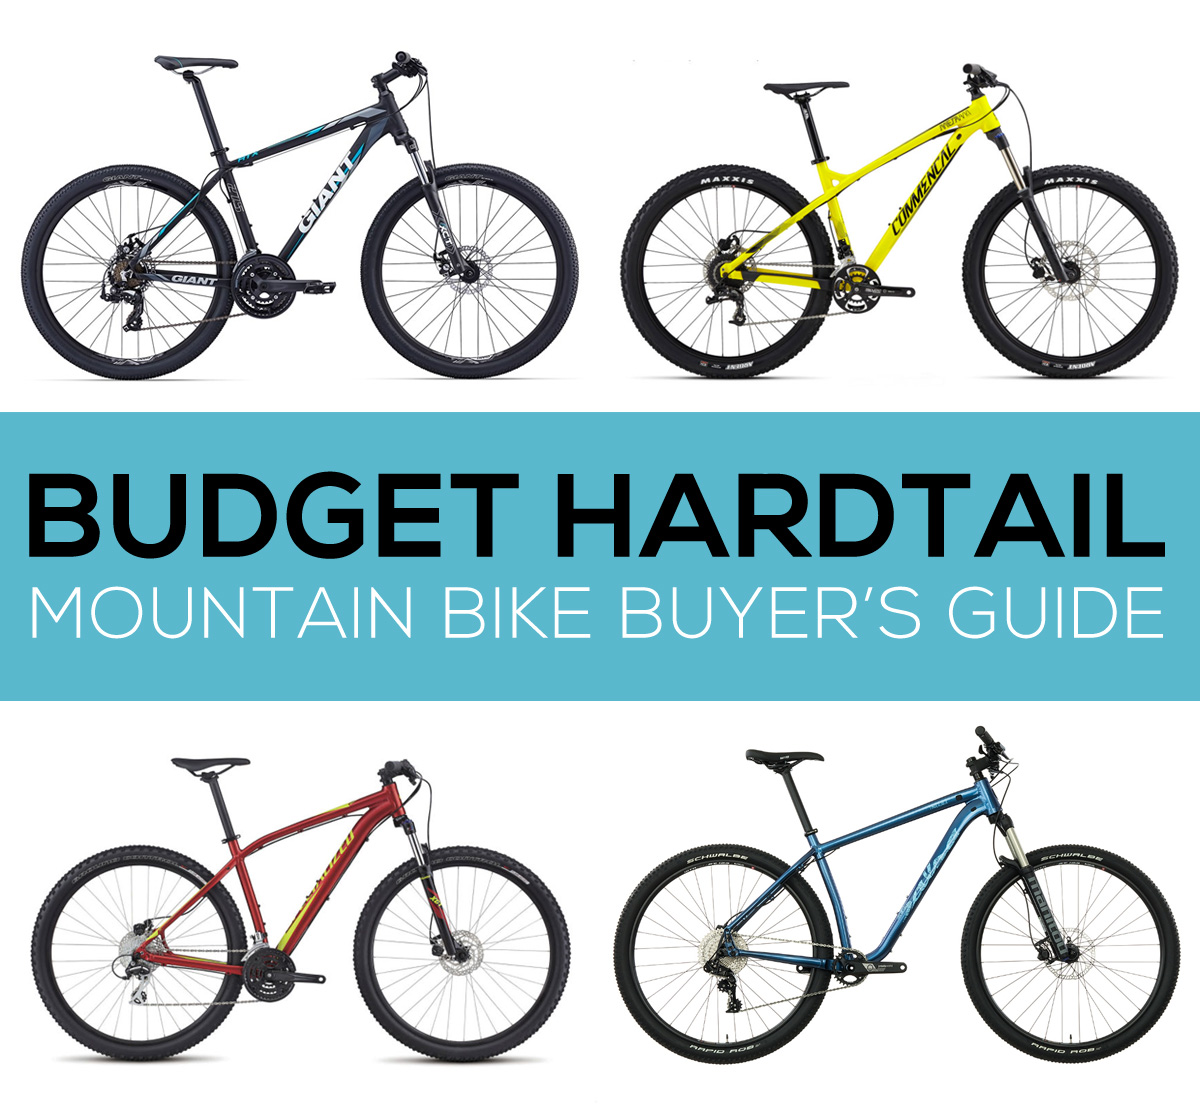 289c236484f Buyer's Guide: Budget Hardtail Mountain Bikes - Singletracks ...